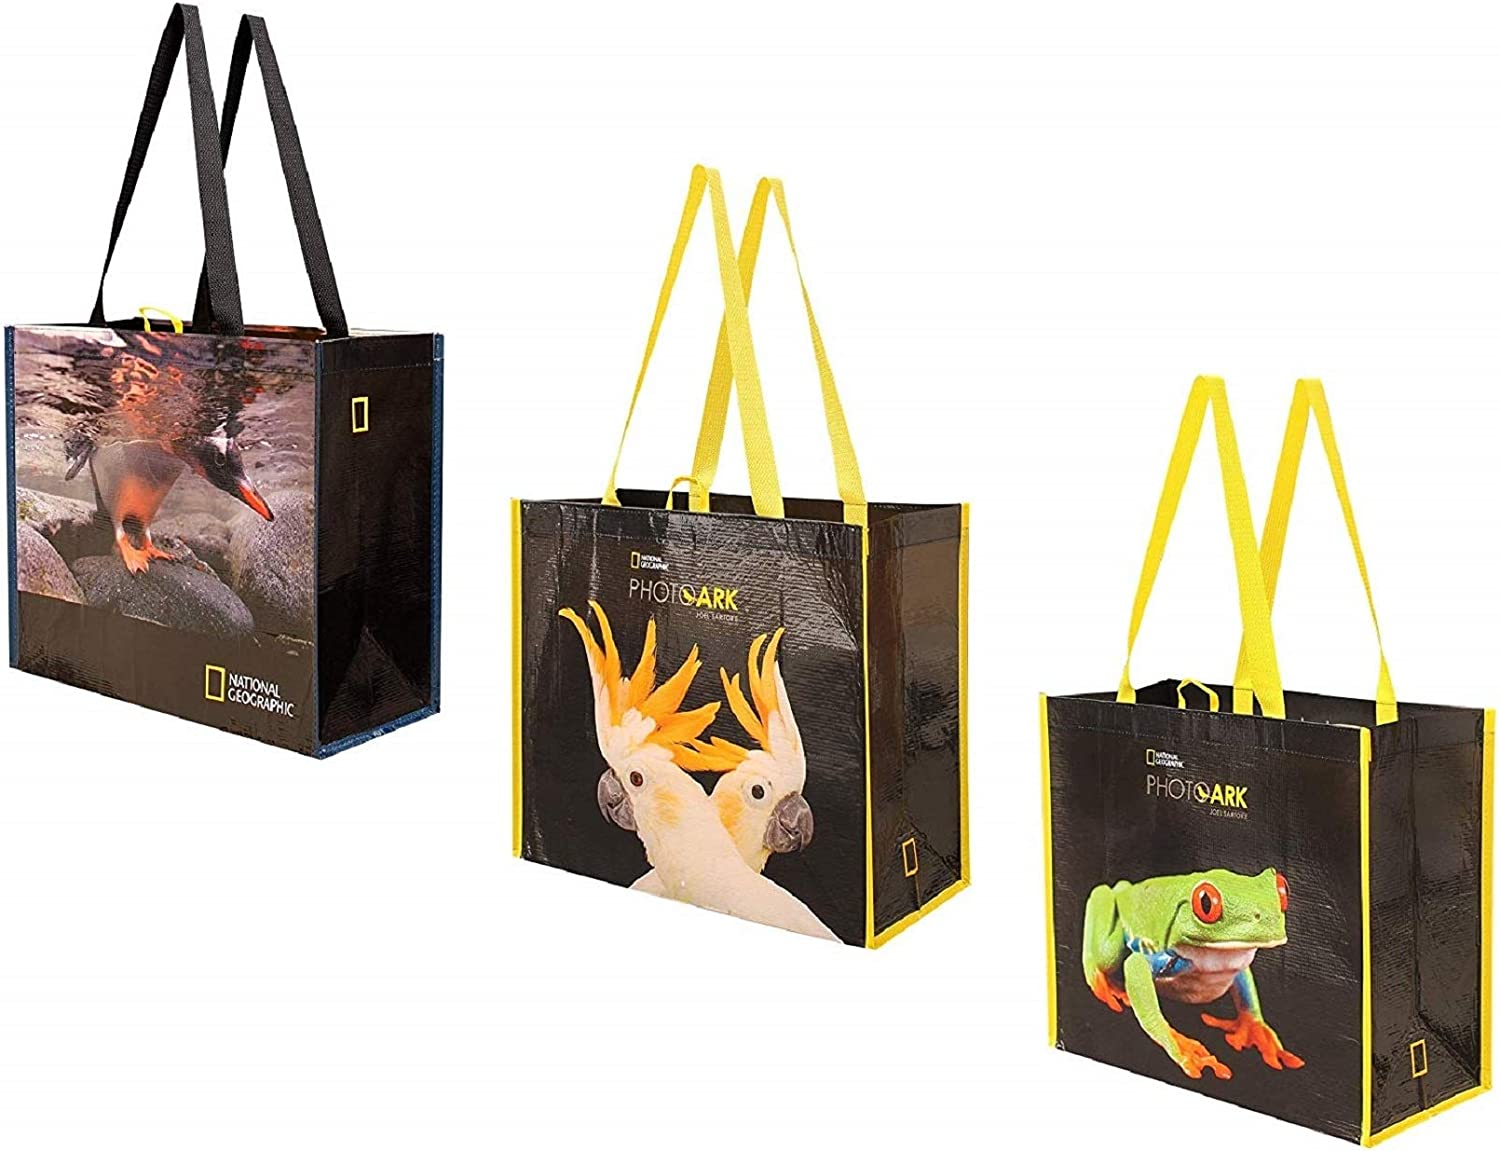 Reusable Grocery Bags Shopping Totes with National Geographic Prints Made from Extremely Durable Heavy Duty Laminated Rpet Water Resistant and Easy to Clean (Set of 3) (Frog/Parrots/Penguin)